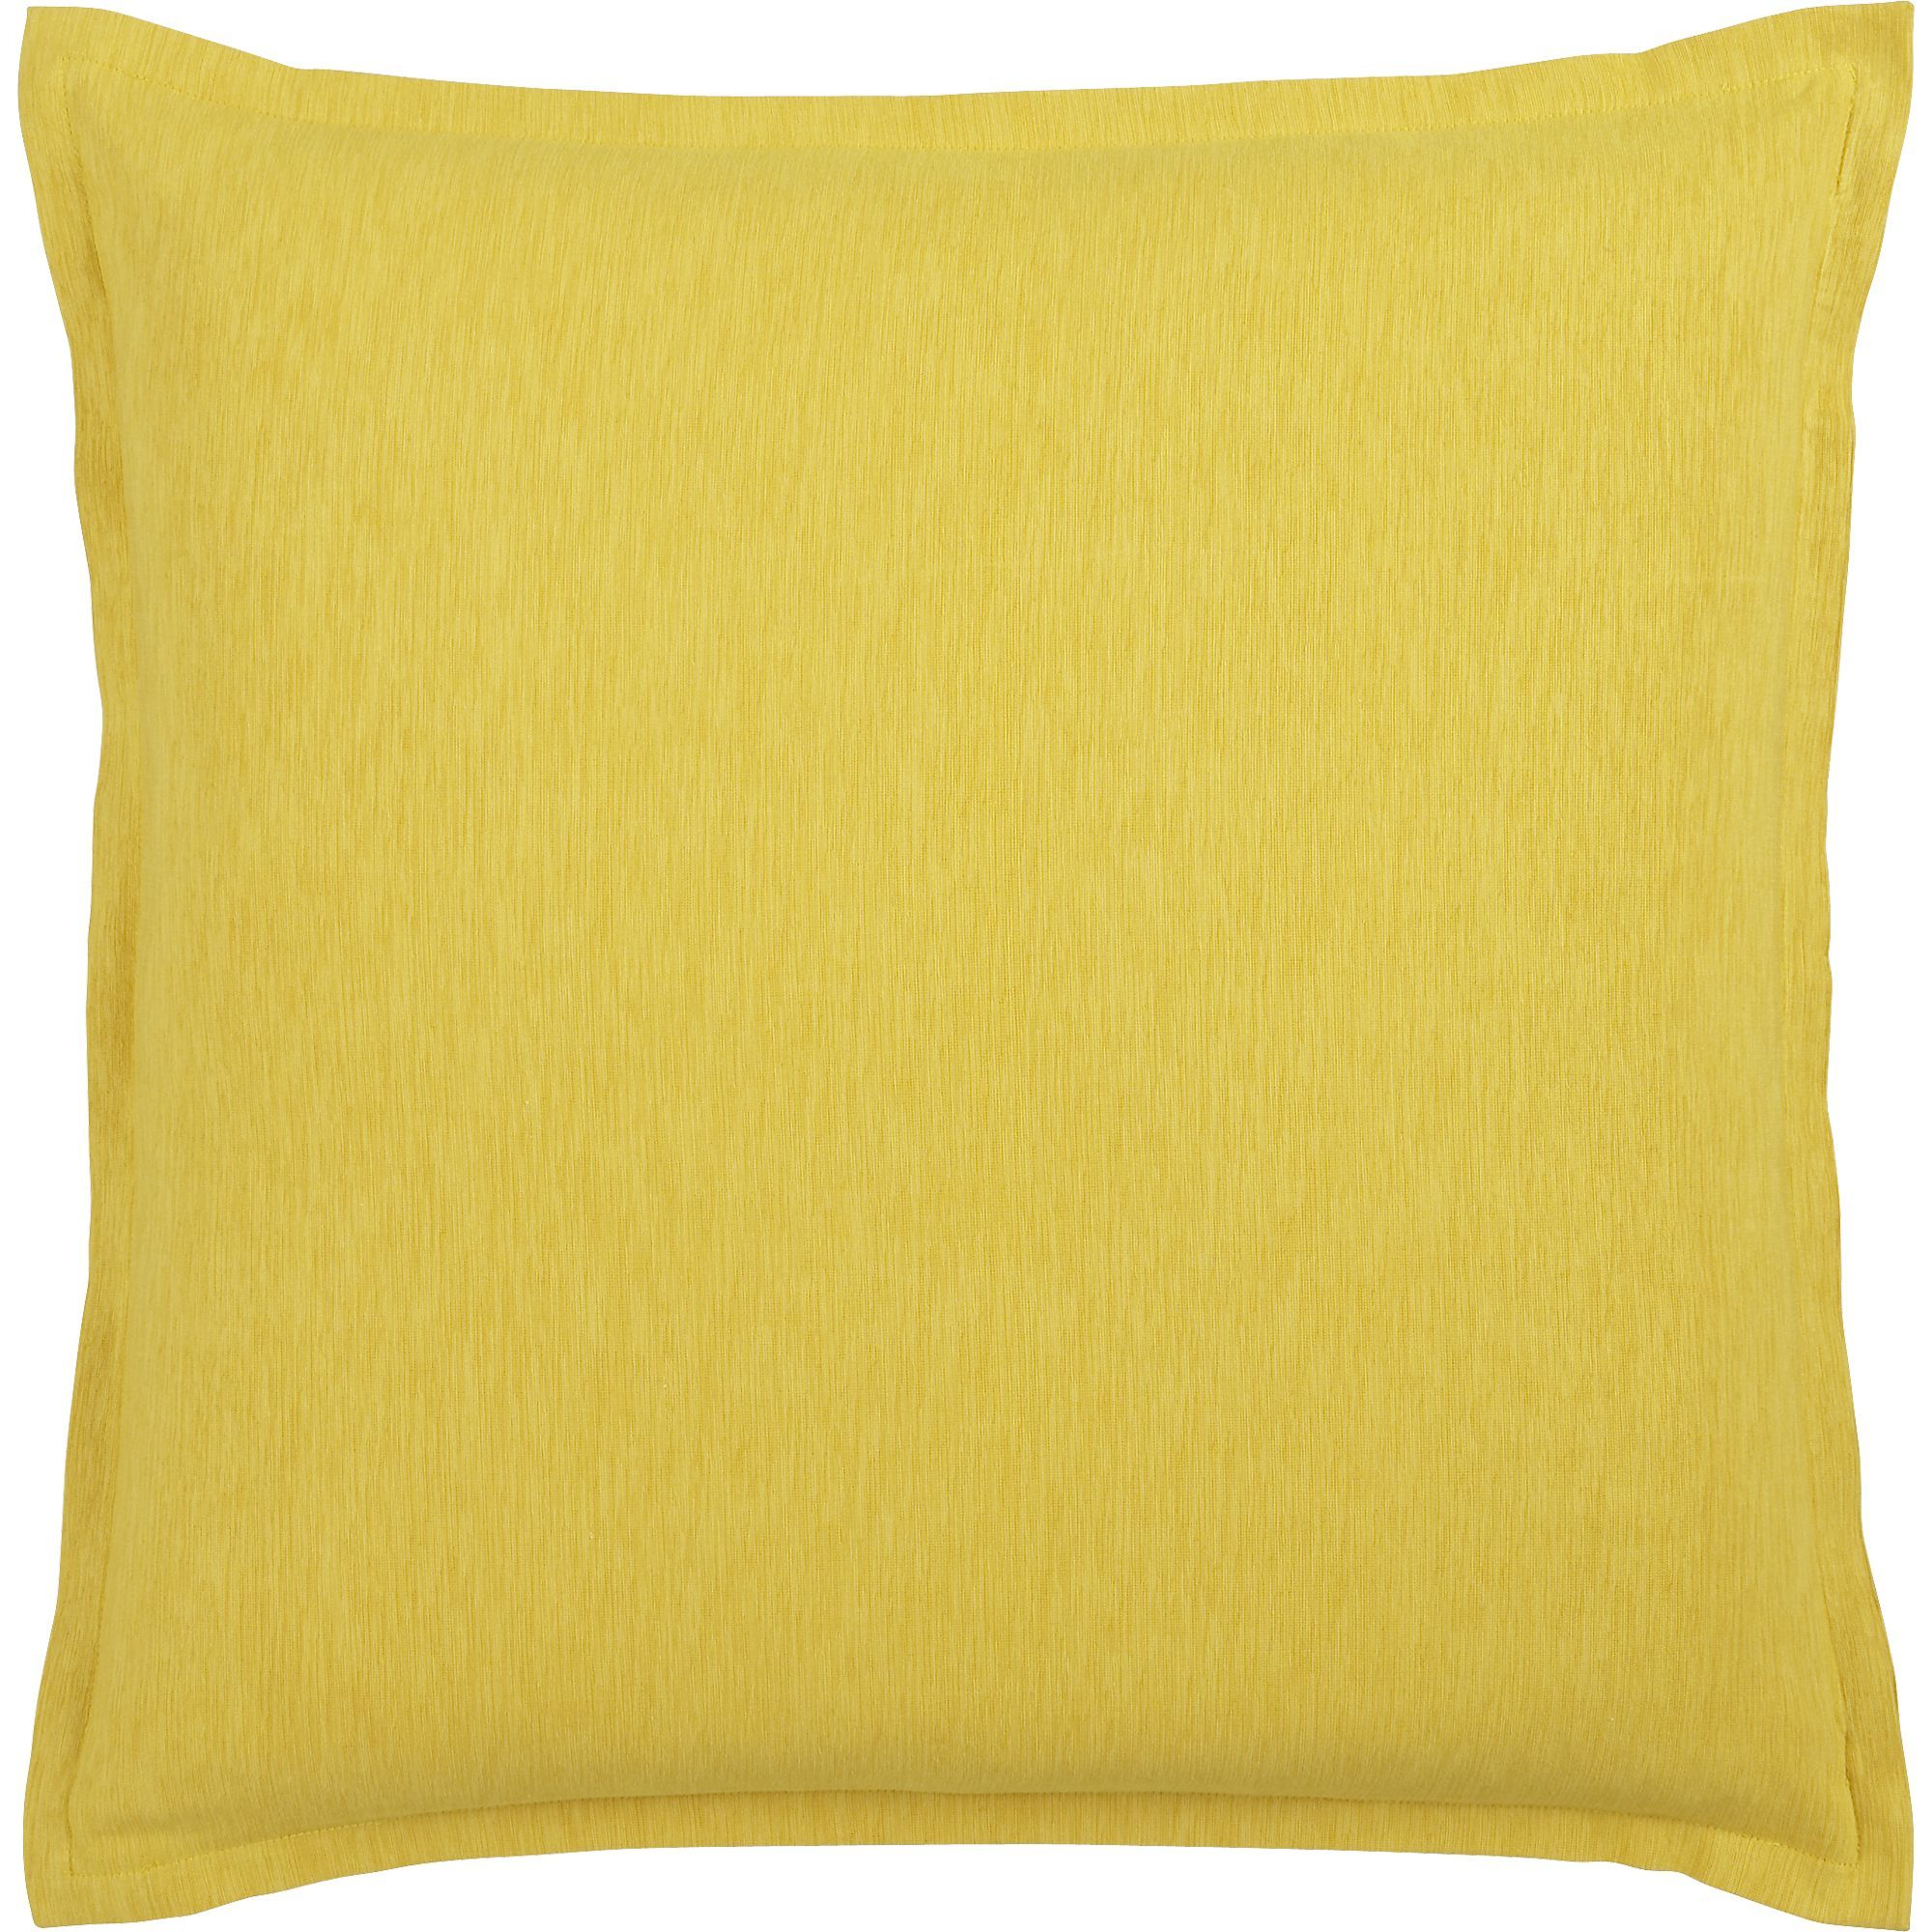 "Linden Yellow 23"" Pillow in Decorative Pillows 